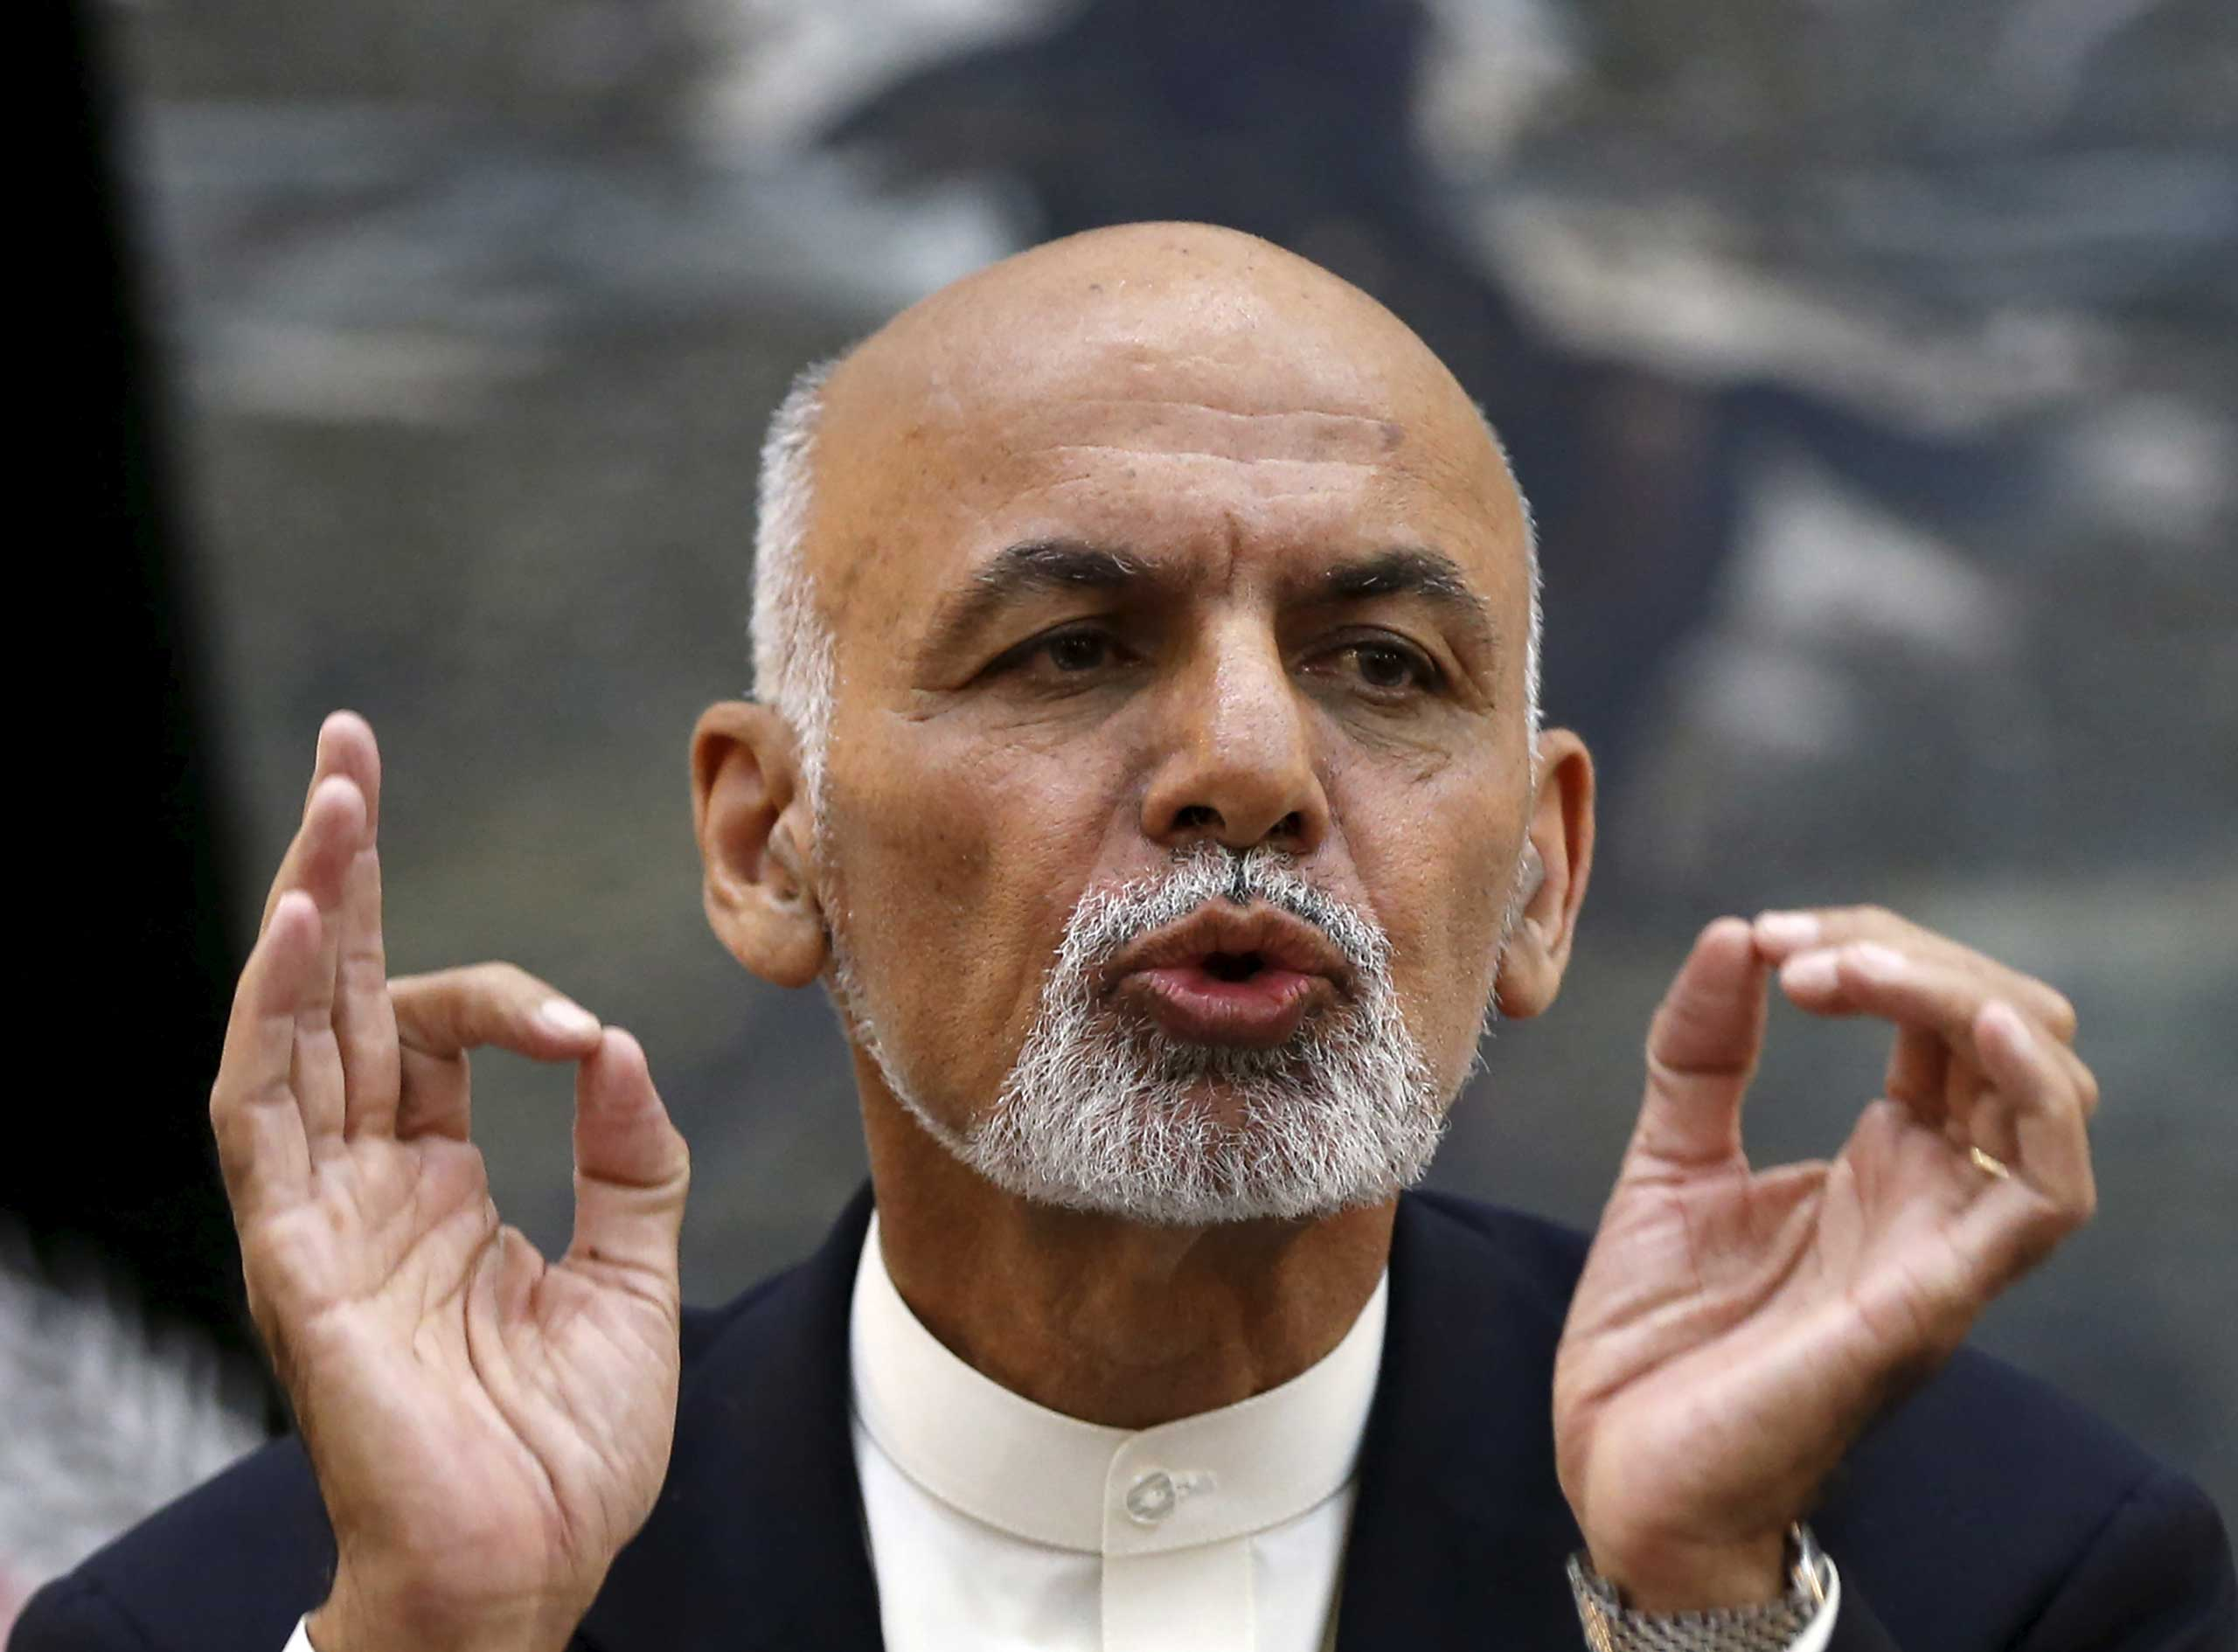 Afghanistan's President Ashraf Ghani speaks during a news conference in Kabul, Afghanistan  Oct. 1, 2015.